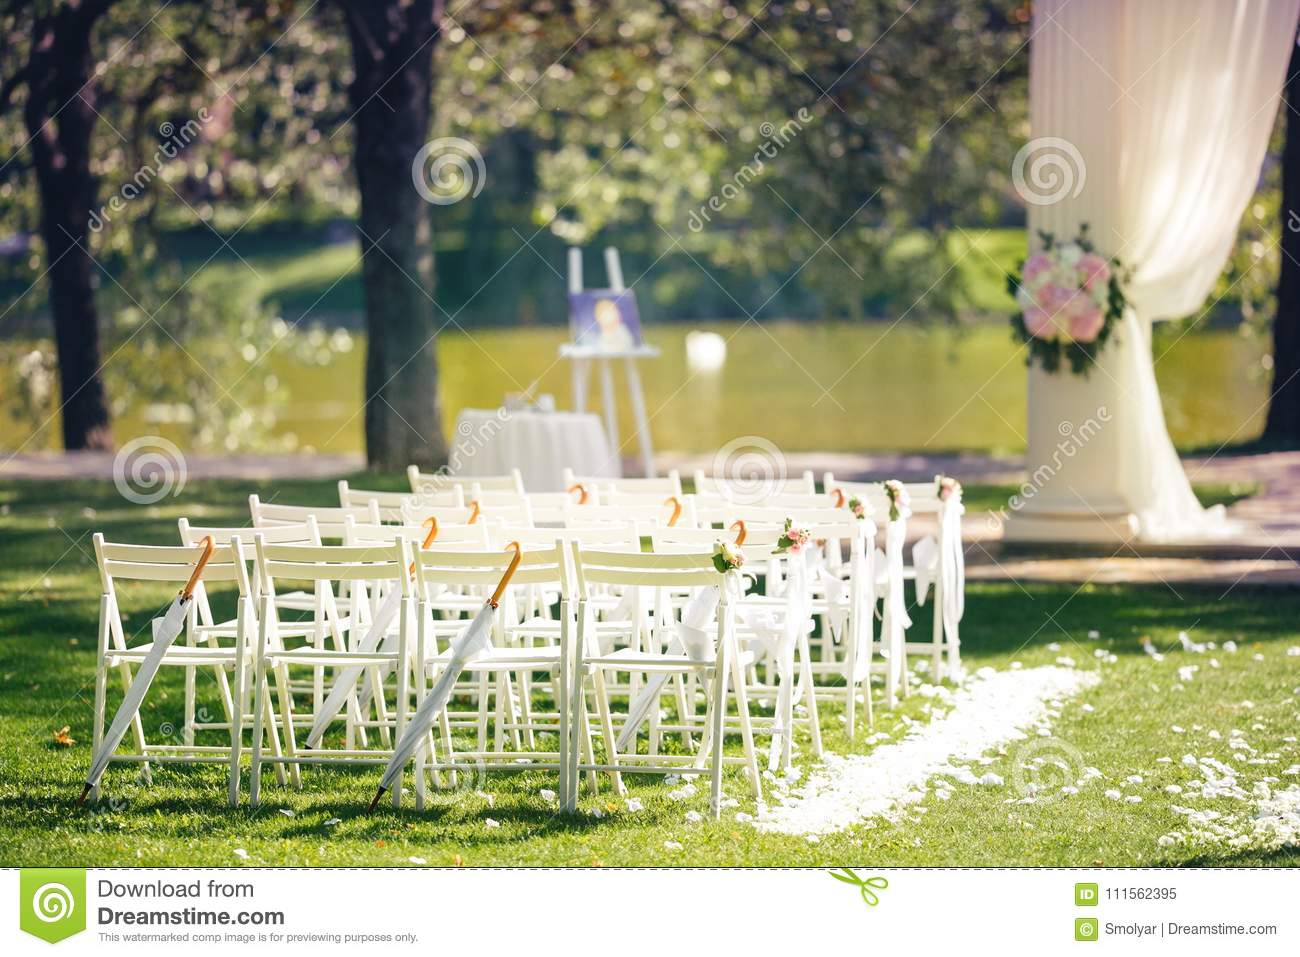 Wedding Ceremony Decoration With Chairs And Arch Near The Lake